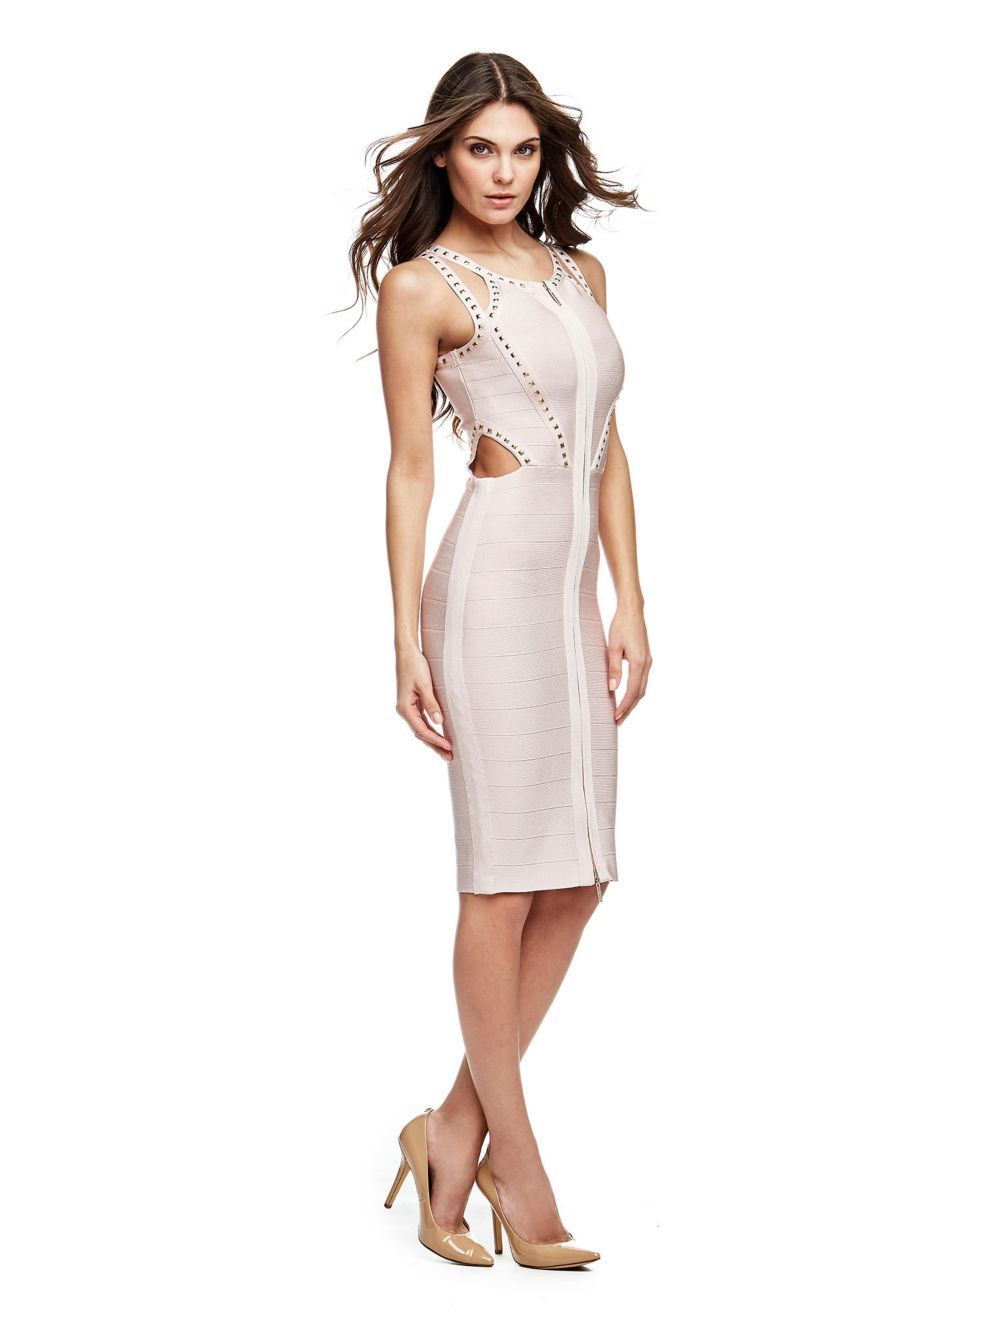 BandageGuess Vetements Marciano eu Vêtements Robe TKl3uF1Jc